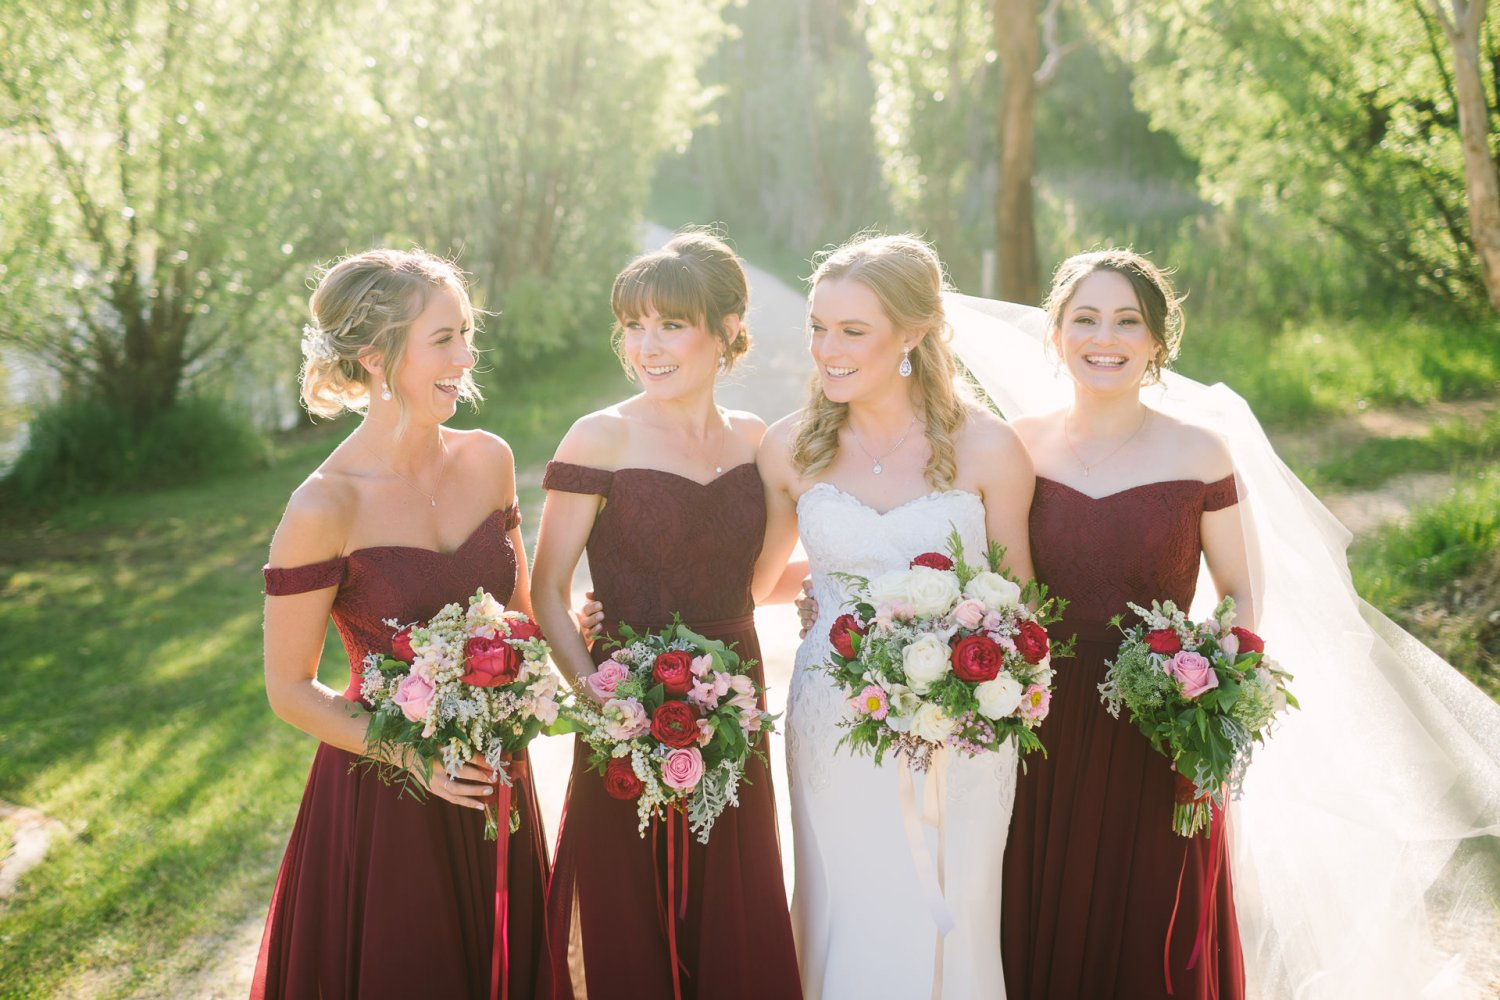 bridesmaids laughing together uposed and natural with bride and flowers in hand at K1 winery